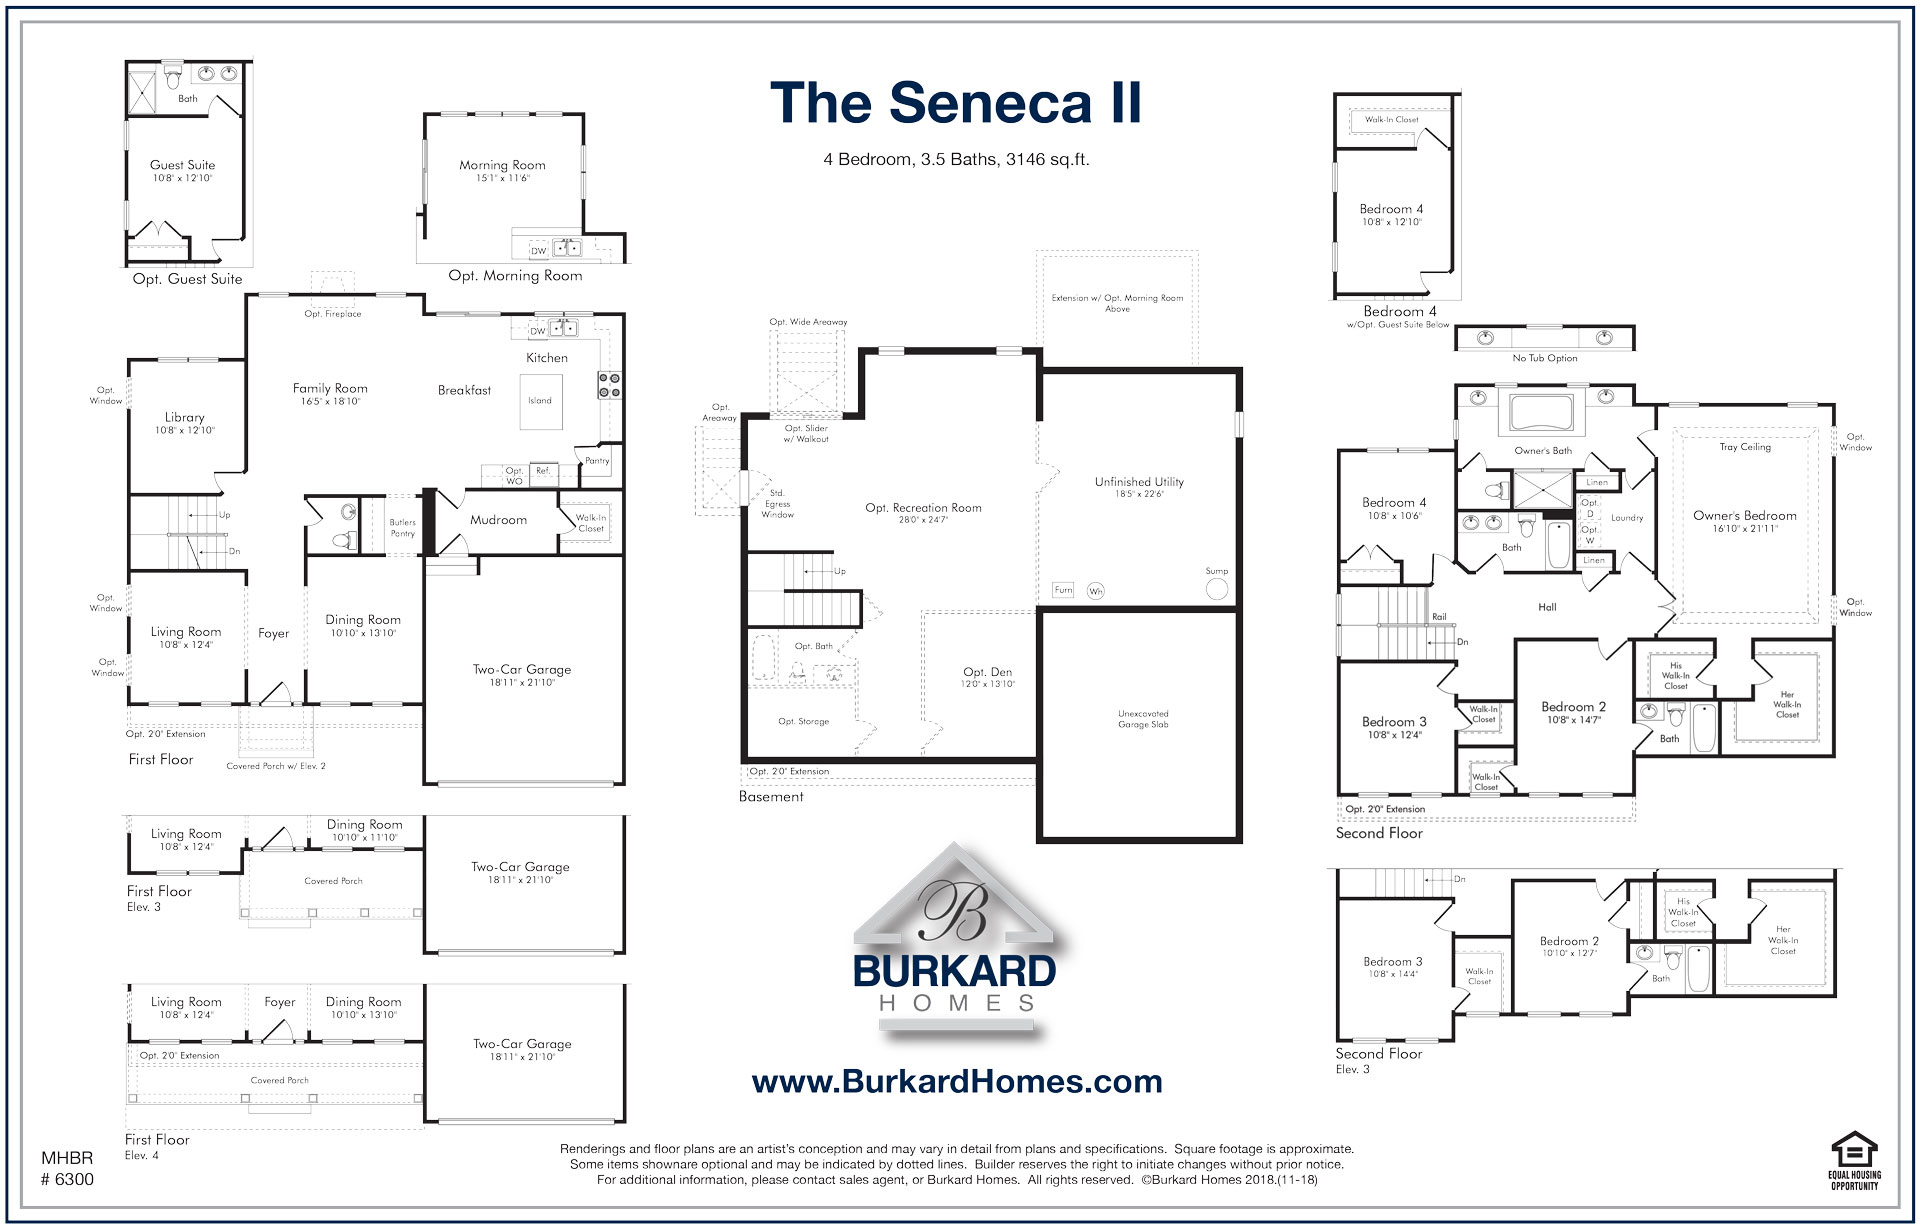 Burkard Homes Seneca II Floor Plan